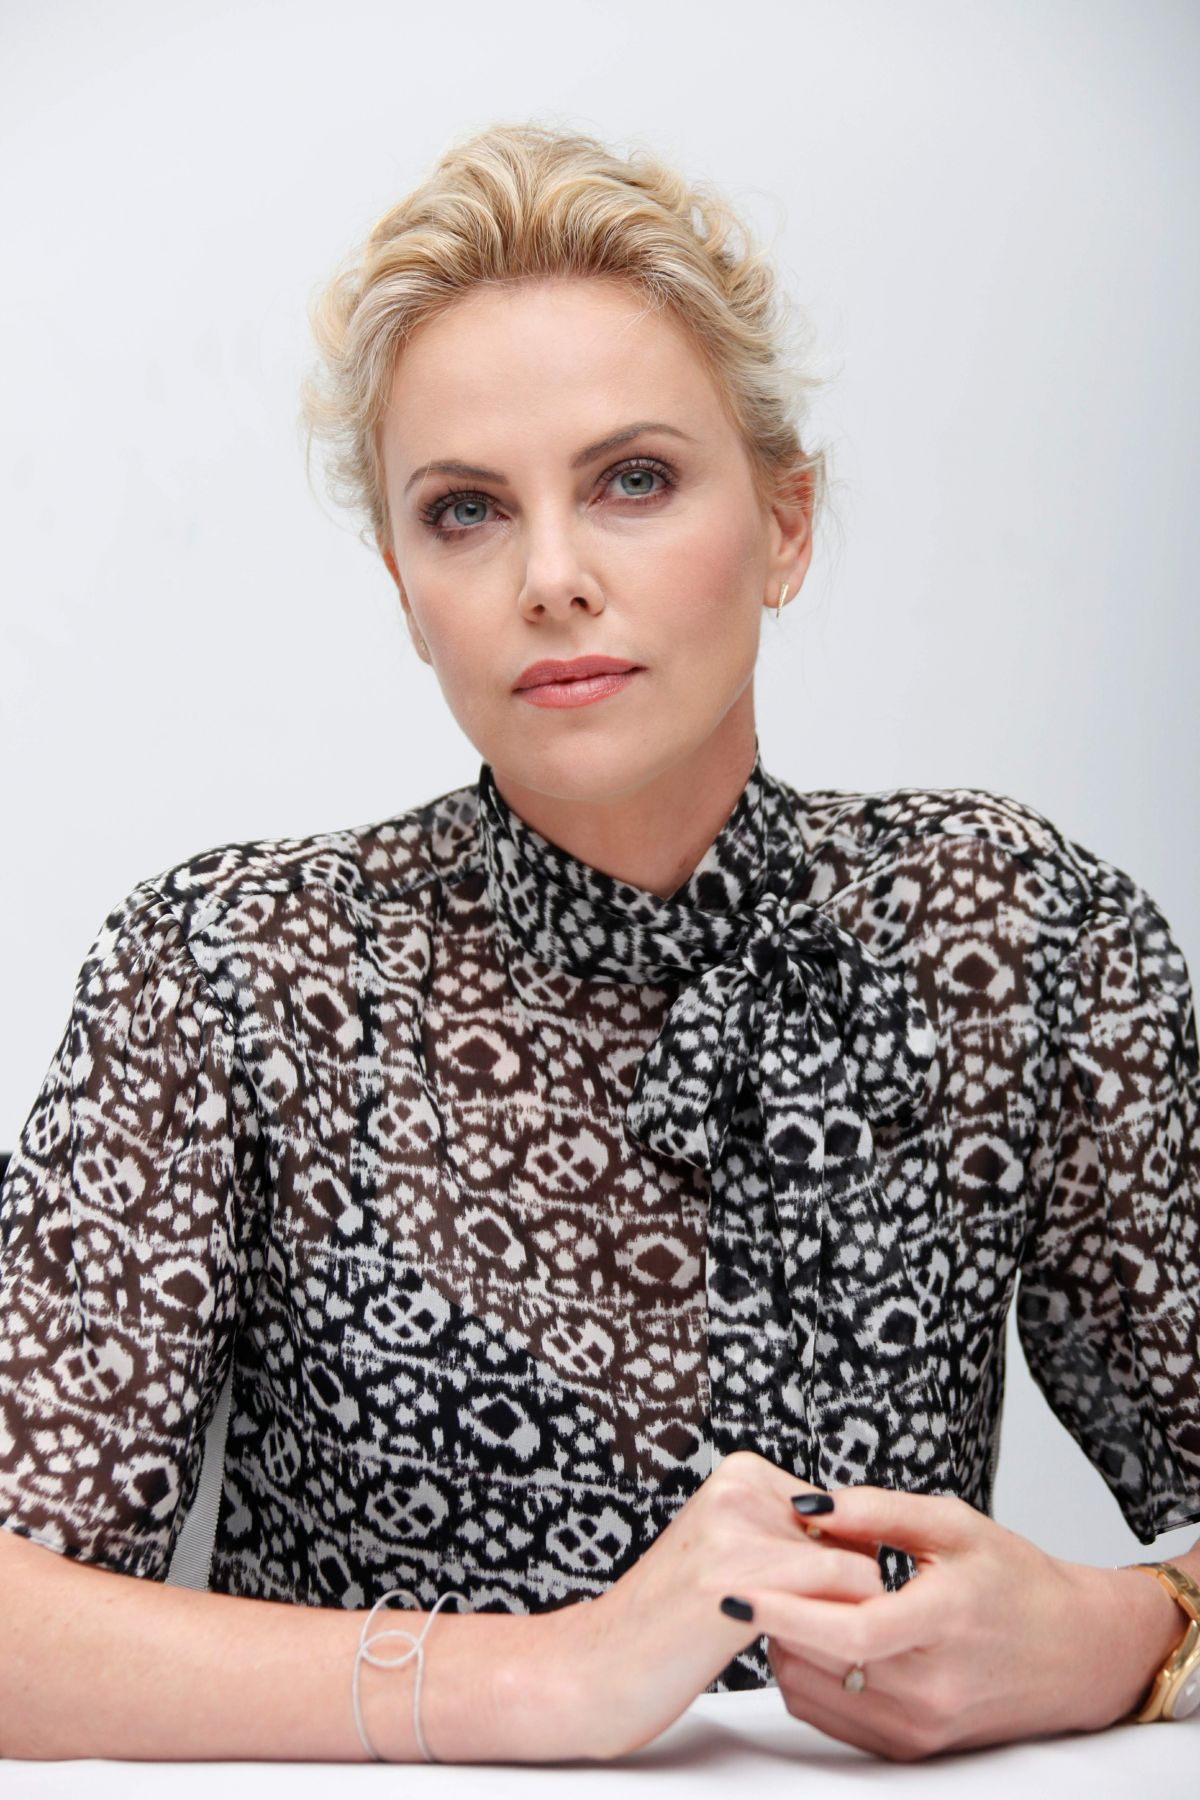 CHARLIZE THERON at Mad Max: Fury Road Press Conference - HawtCelebs ... Charlize Theron